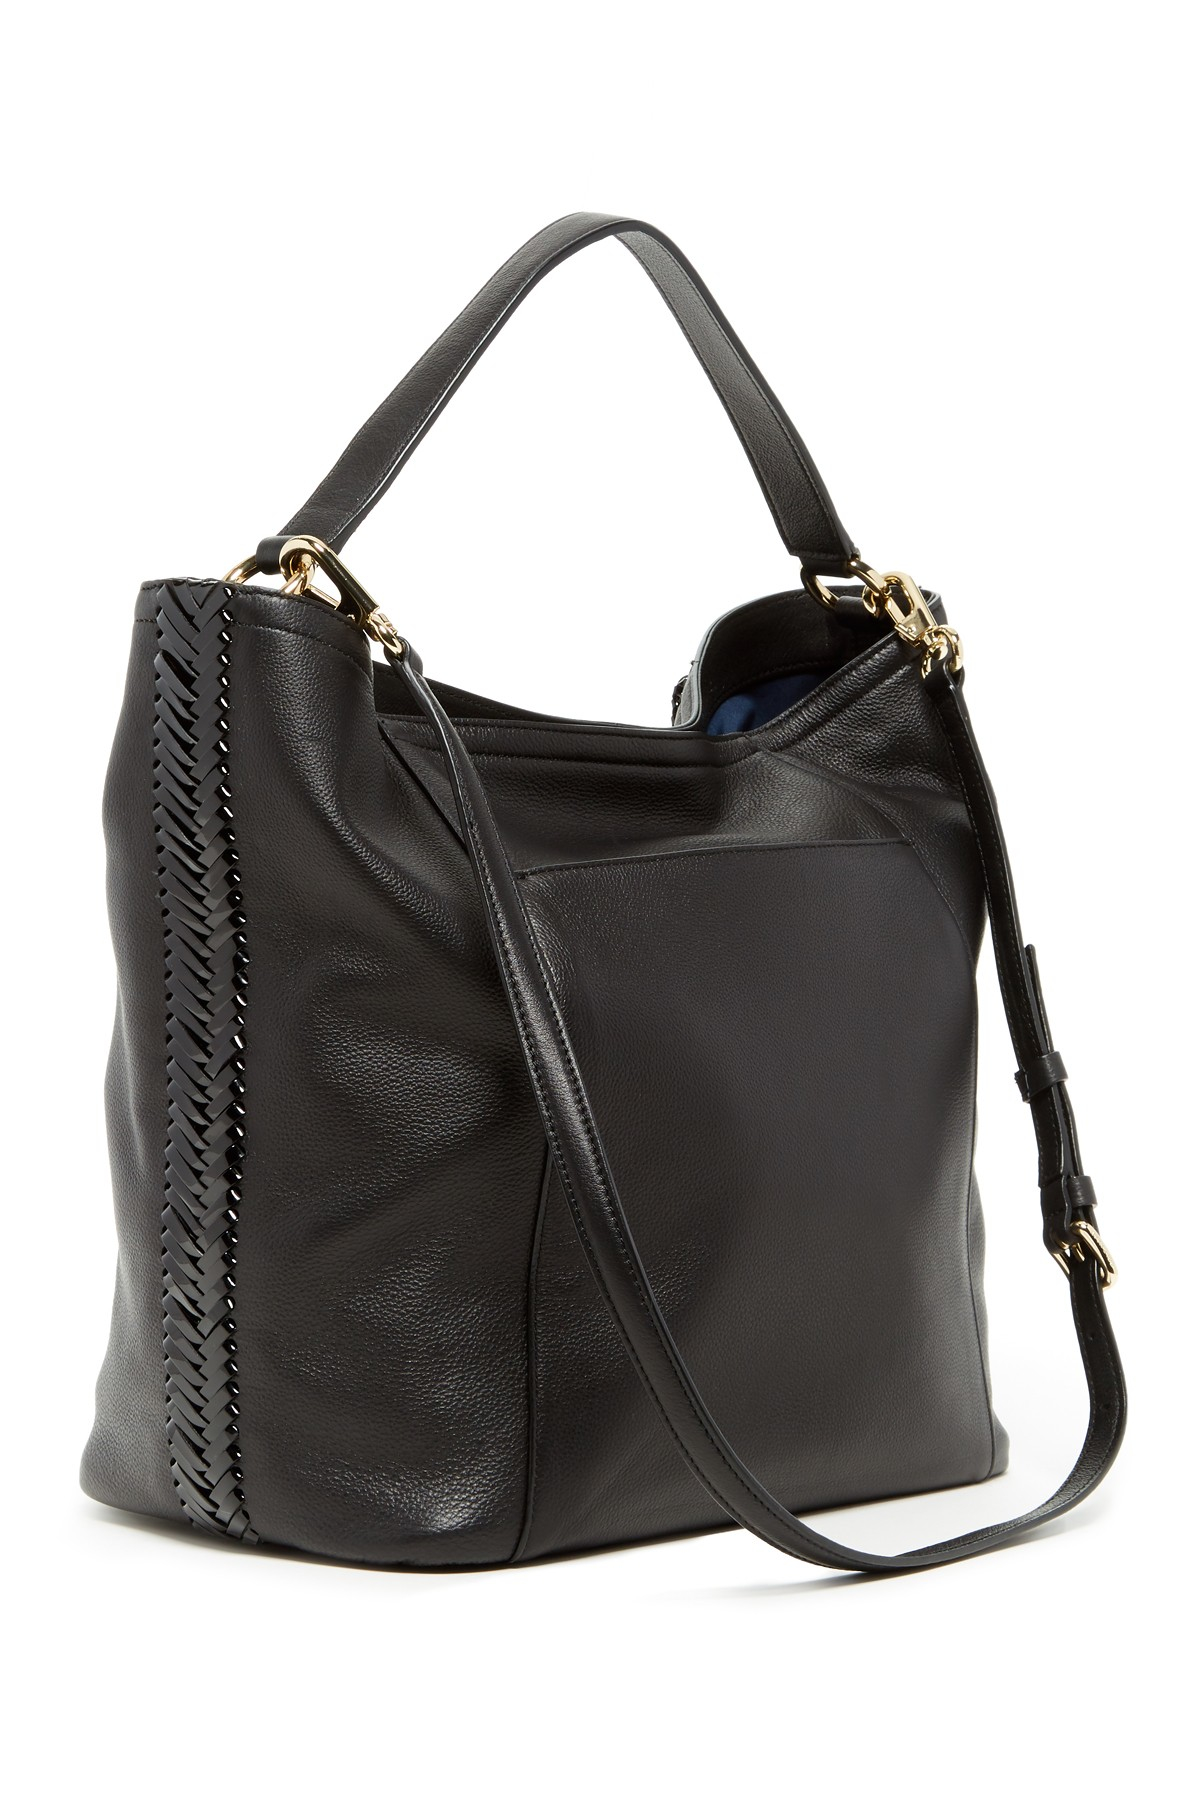 Cole Haan Nickson Ii Double Leather Strap Hobo Bag In